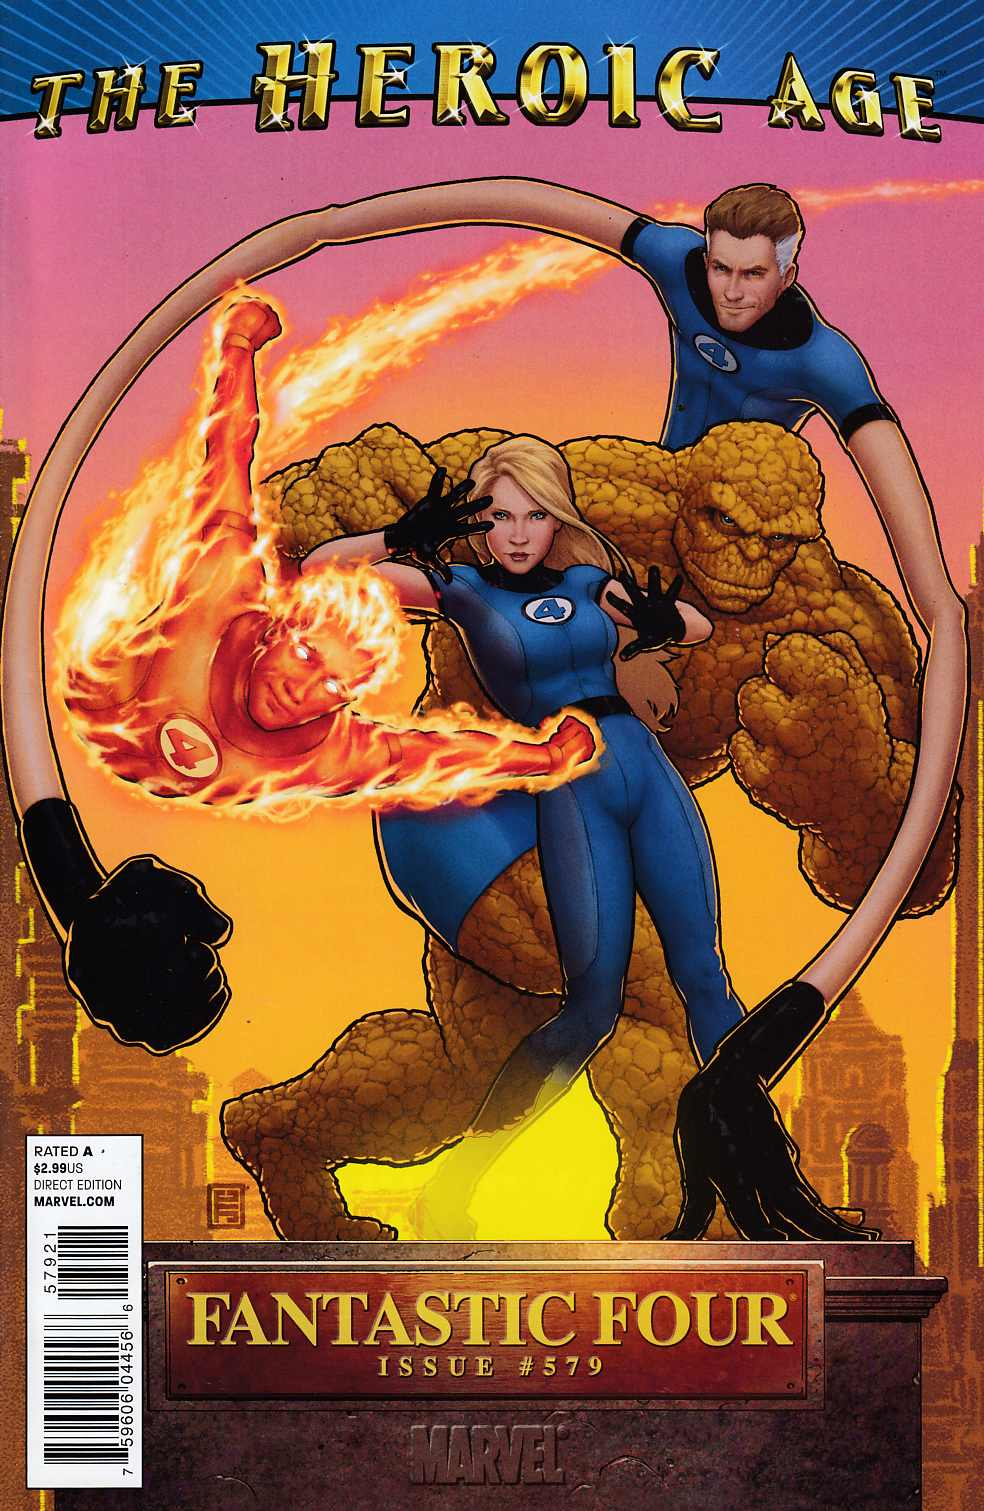 Fantastic Four #579 Heroic Age Variant Cover Very Fine Plus (8.5) [Marvel Comic] LARGE